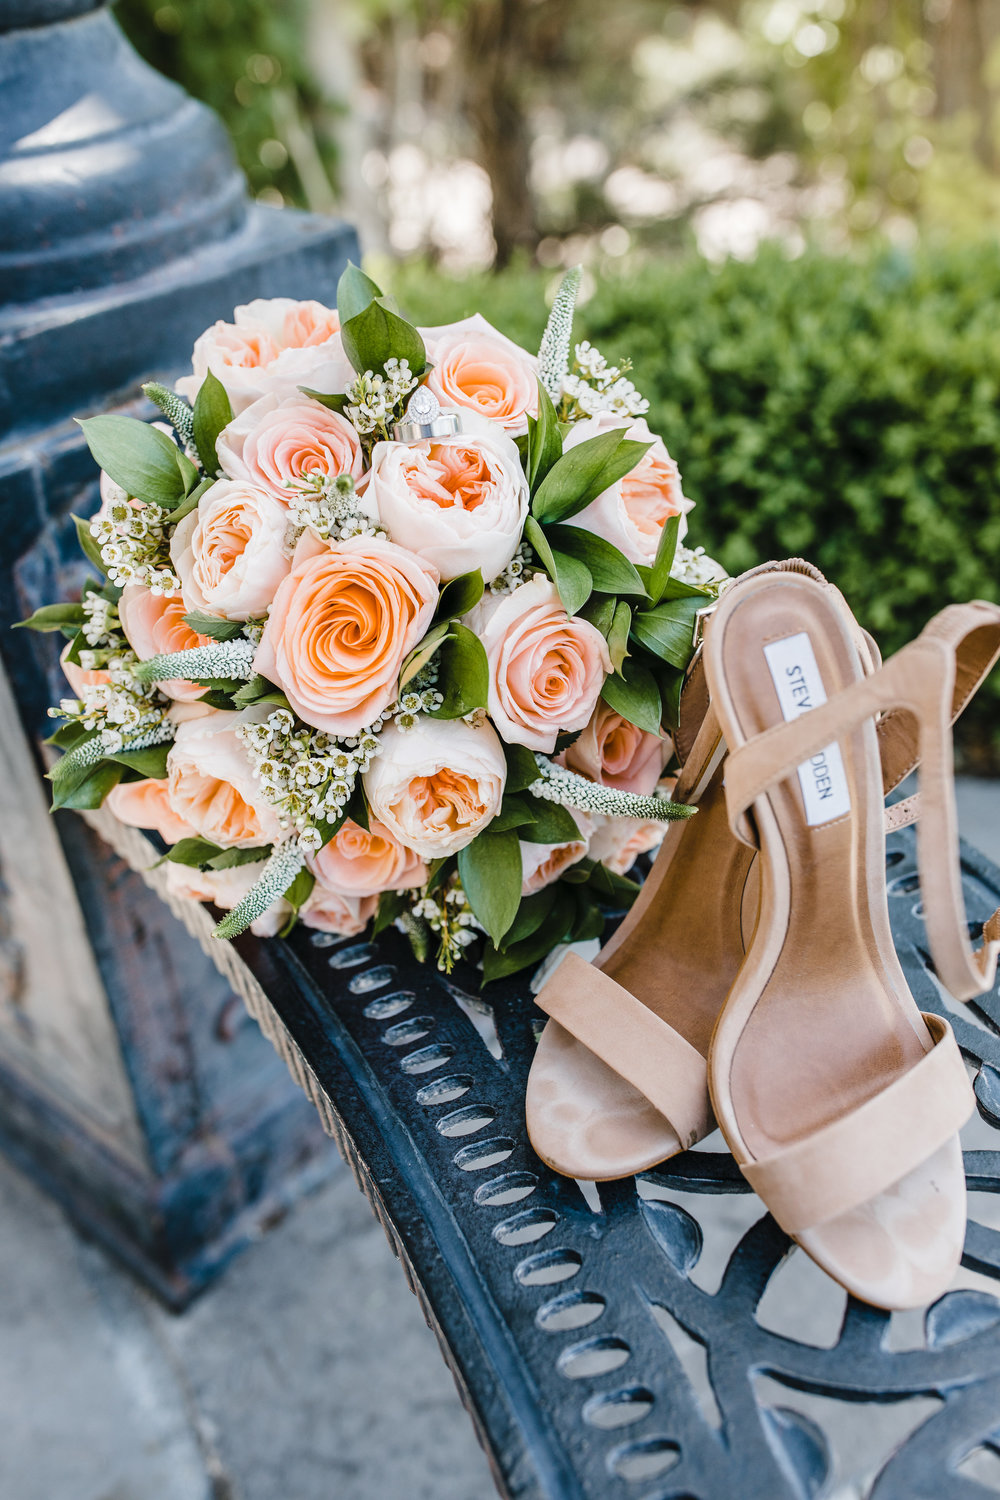 wedding day details rose bouquet and bride shoes northern utah wedding photographer calli richards